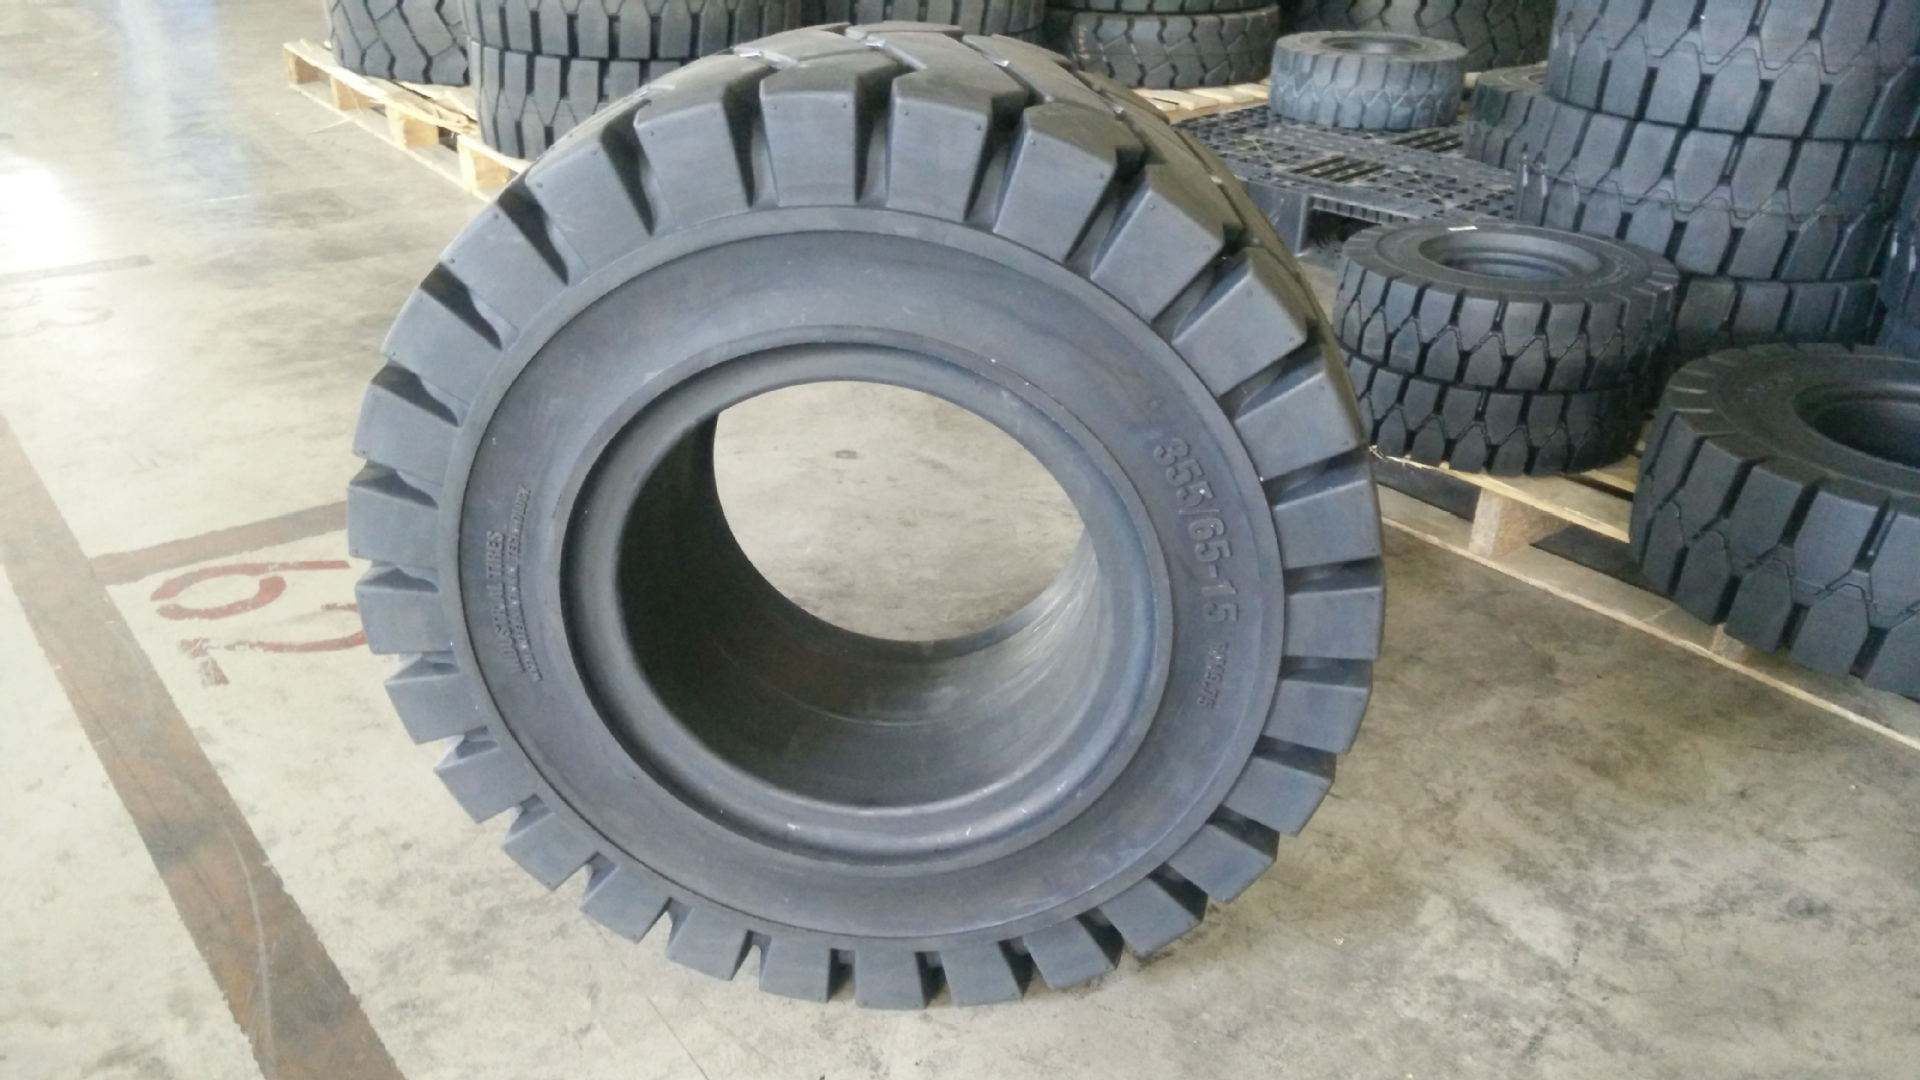 Profile view of 355/65-15 tire